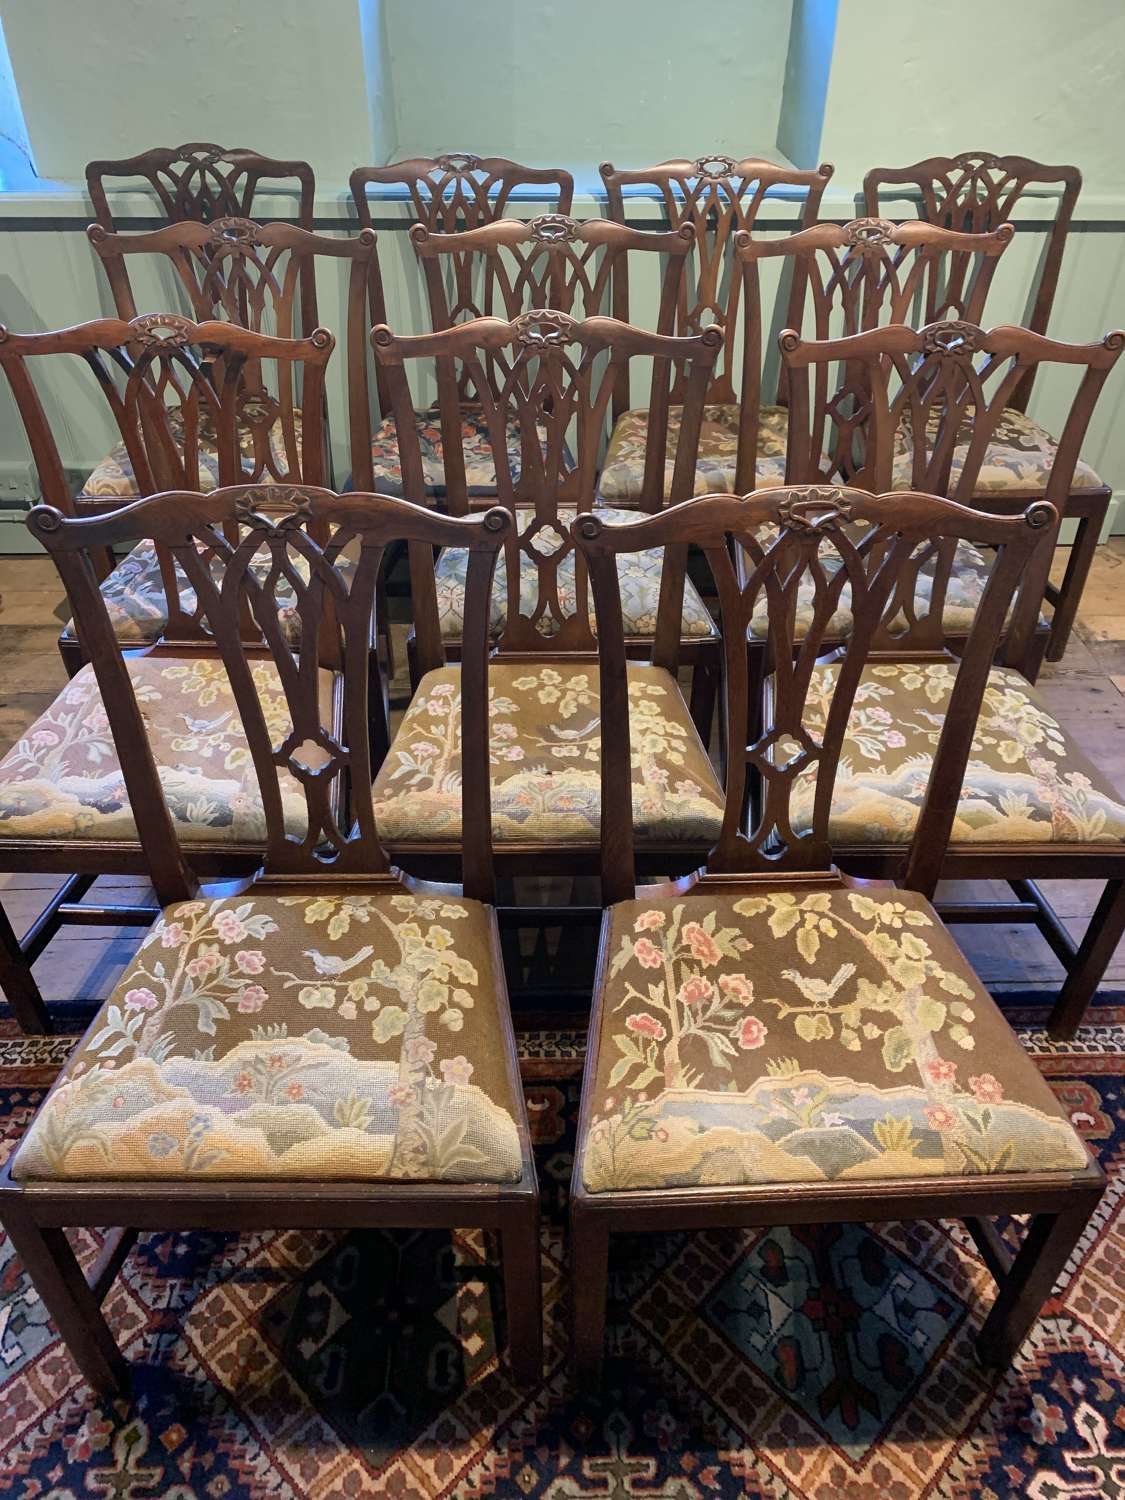 Twelve George III Mahogany Dining Chairs with Needlework Seats